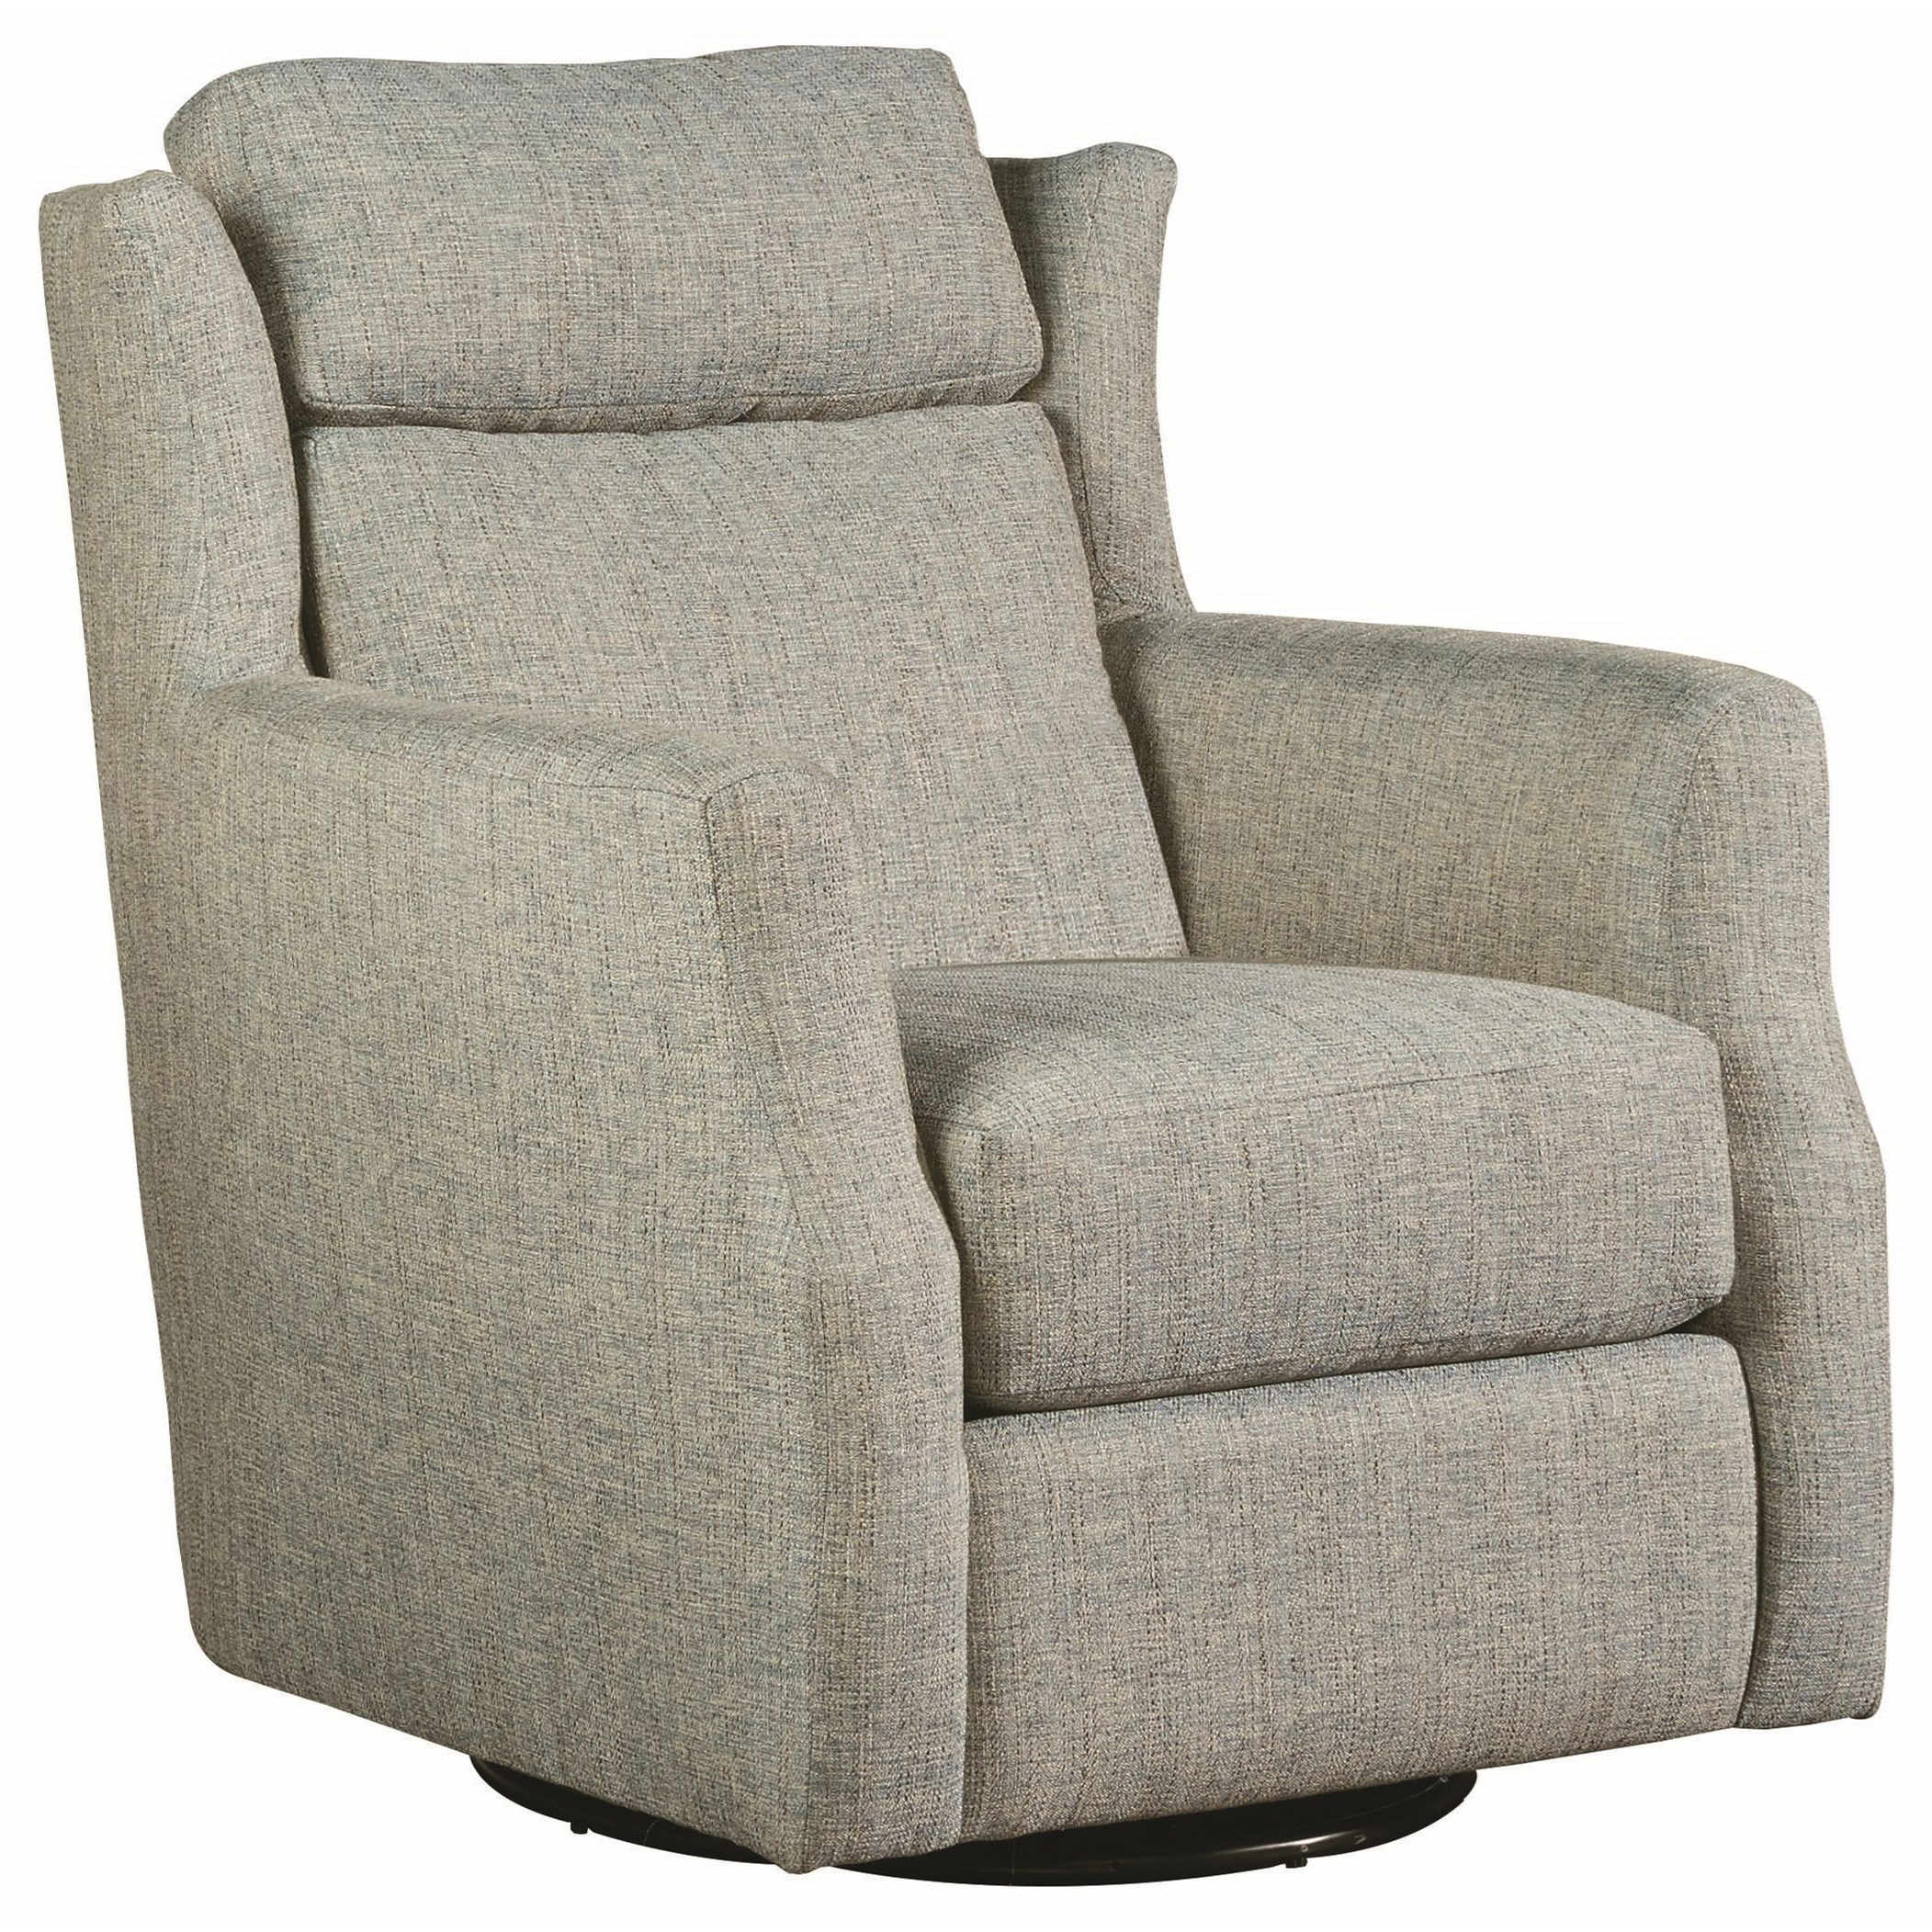 Take Note Swivel Glider by Southern Motion at Zak's Home